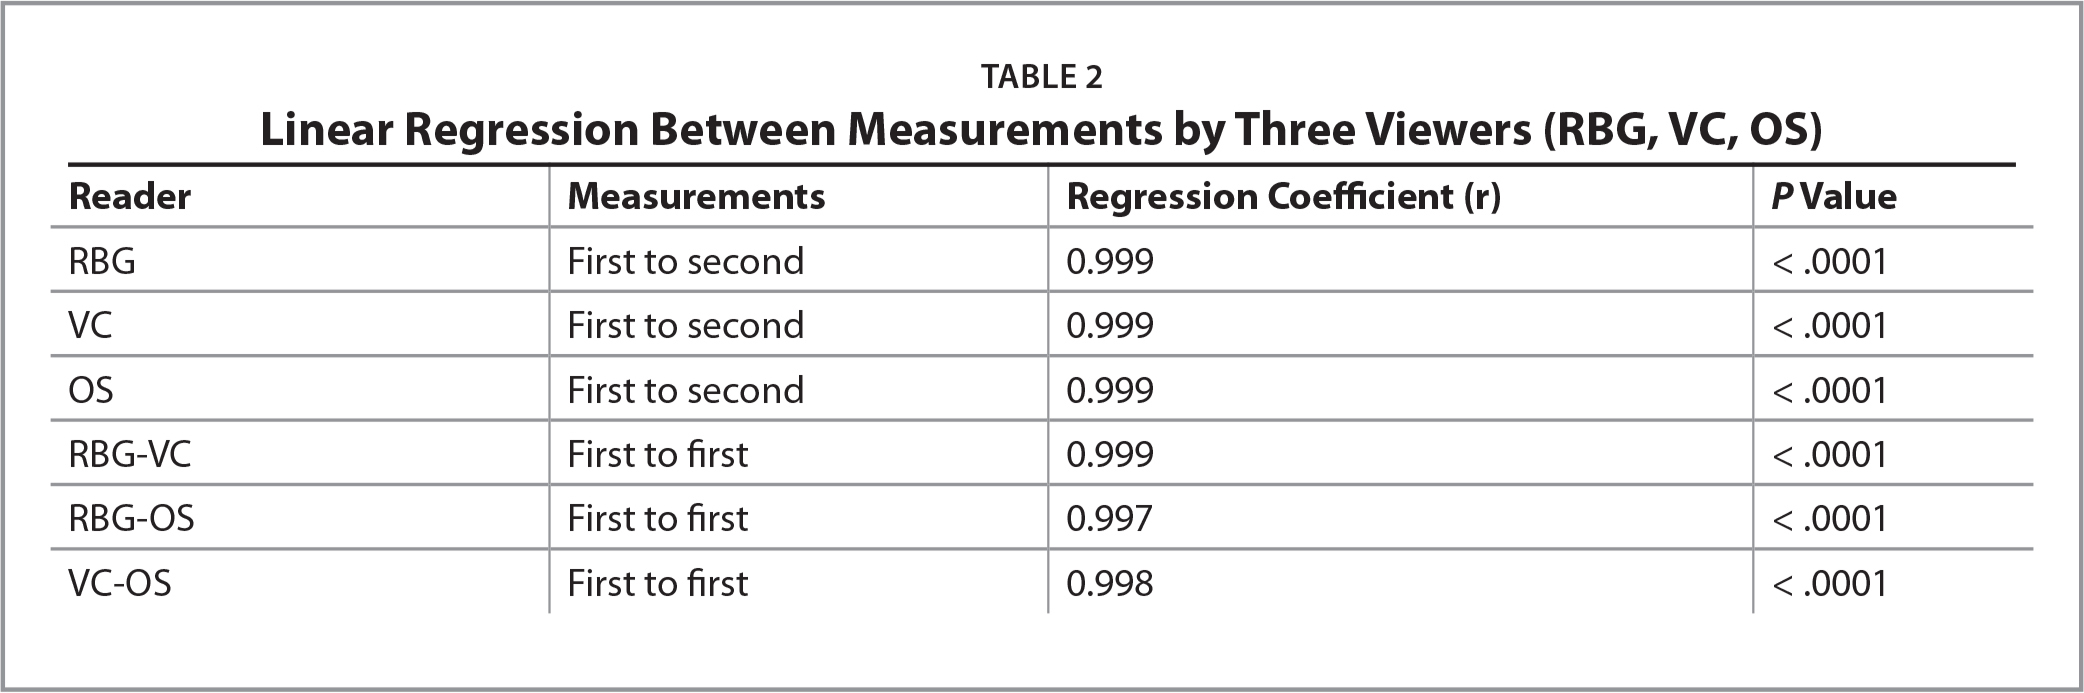 Linear Regression Between Measurements by Three Viewers (RBG, VC, OS)